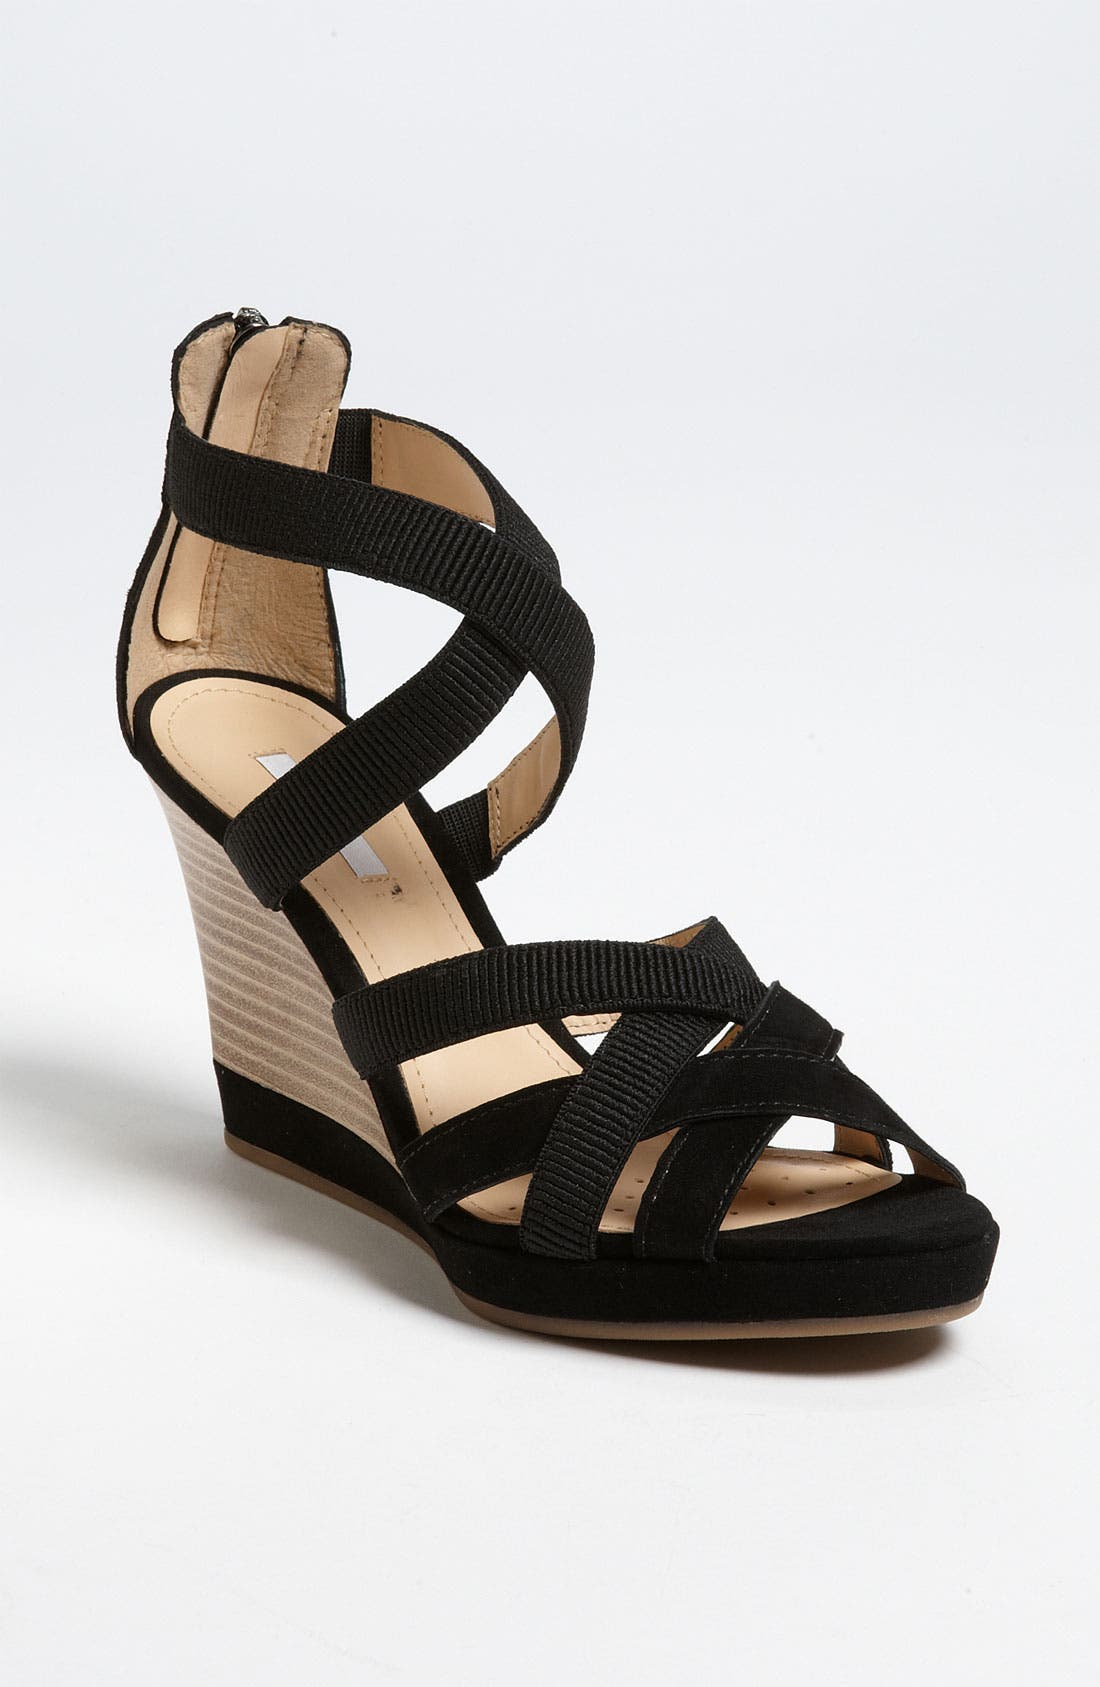 Alternate Image 1 Selected - Geox 'Donna Sibilla' Sandal